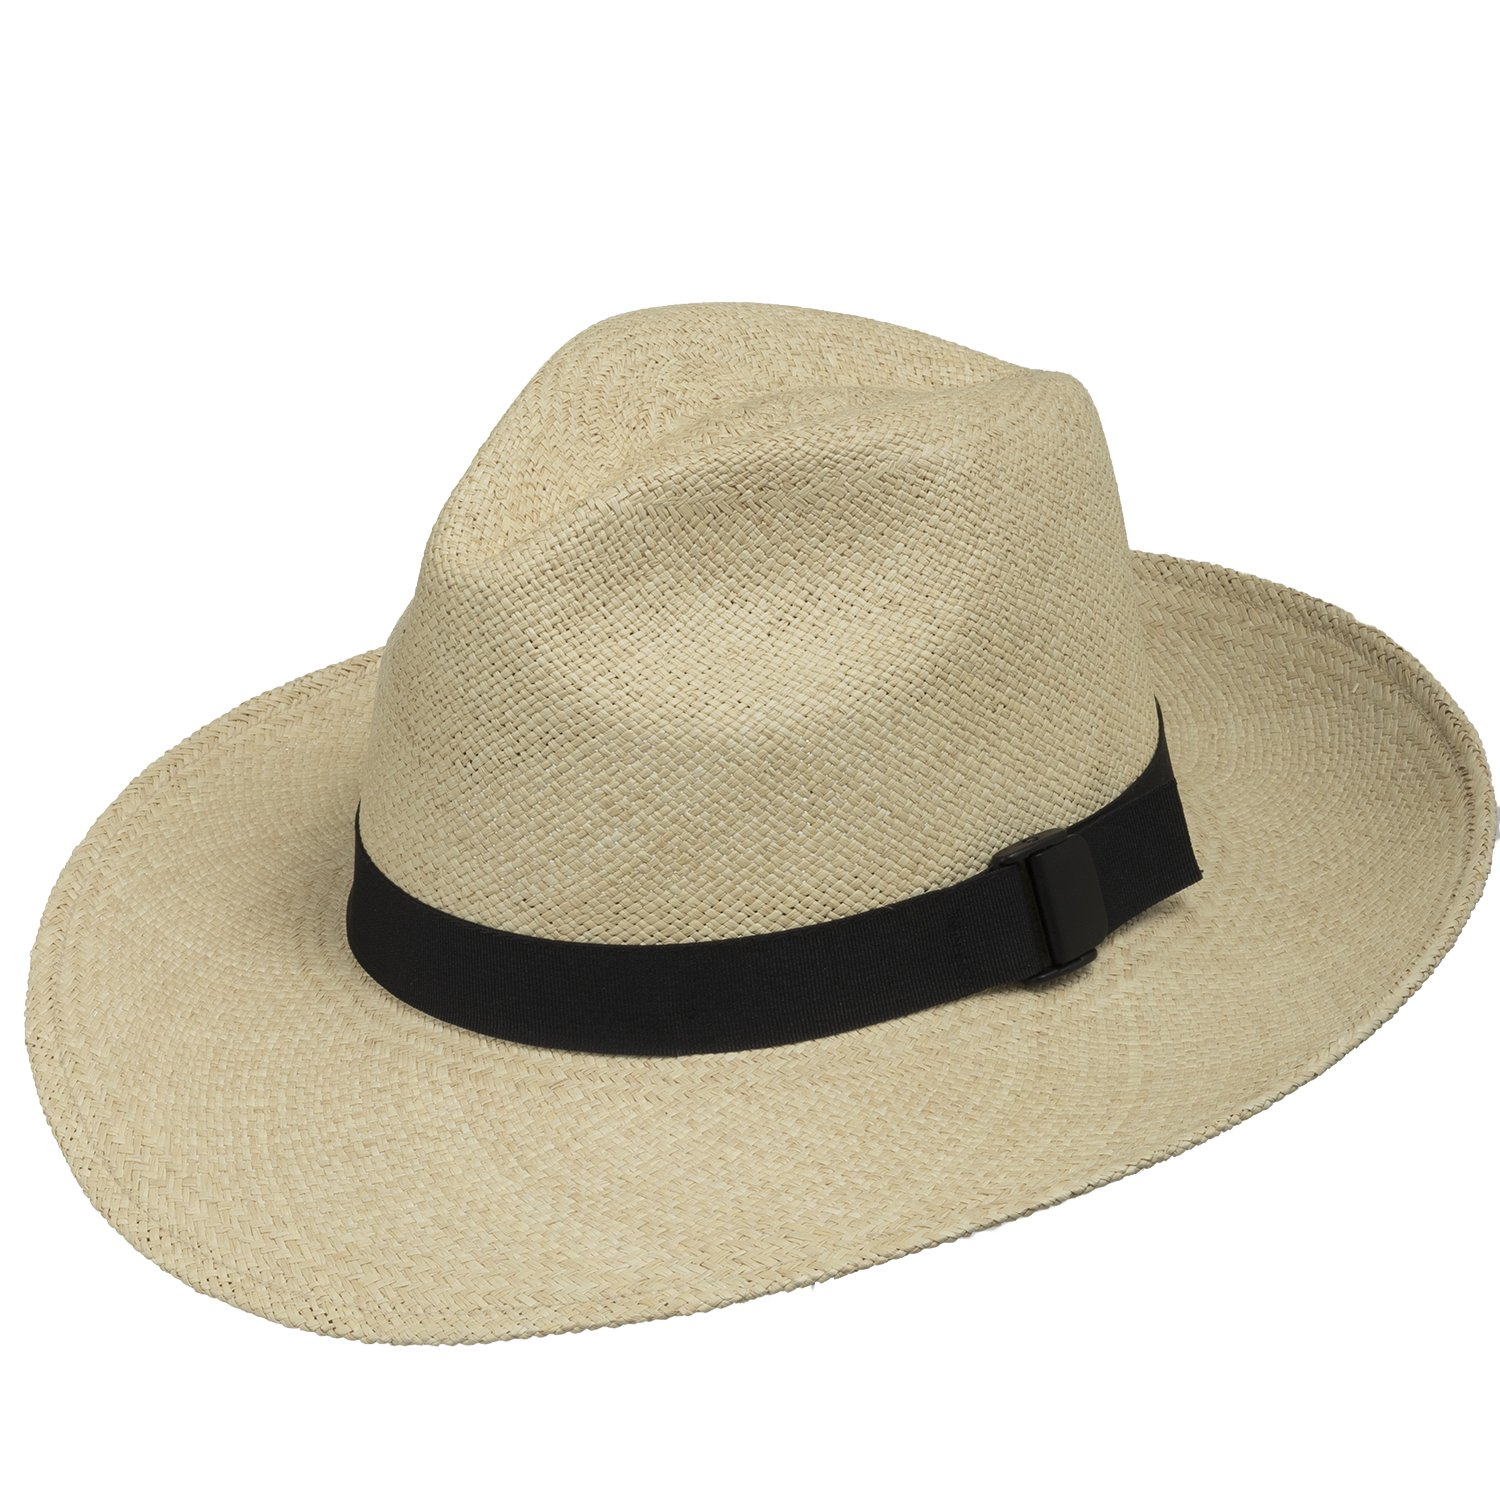 FEDORA PACKABLE FOLDABLE Panama Straw Hat CLASSIC 7 3/8 by Ultrafino